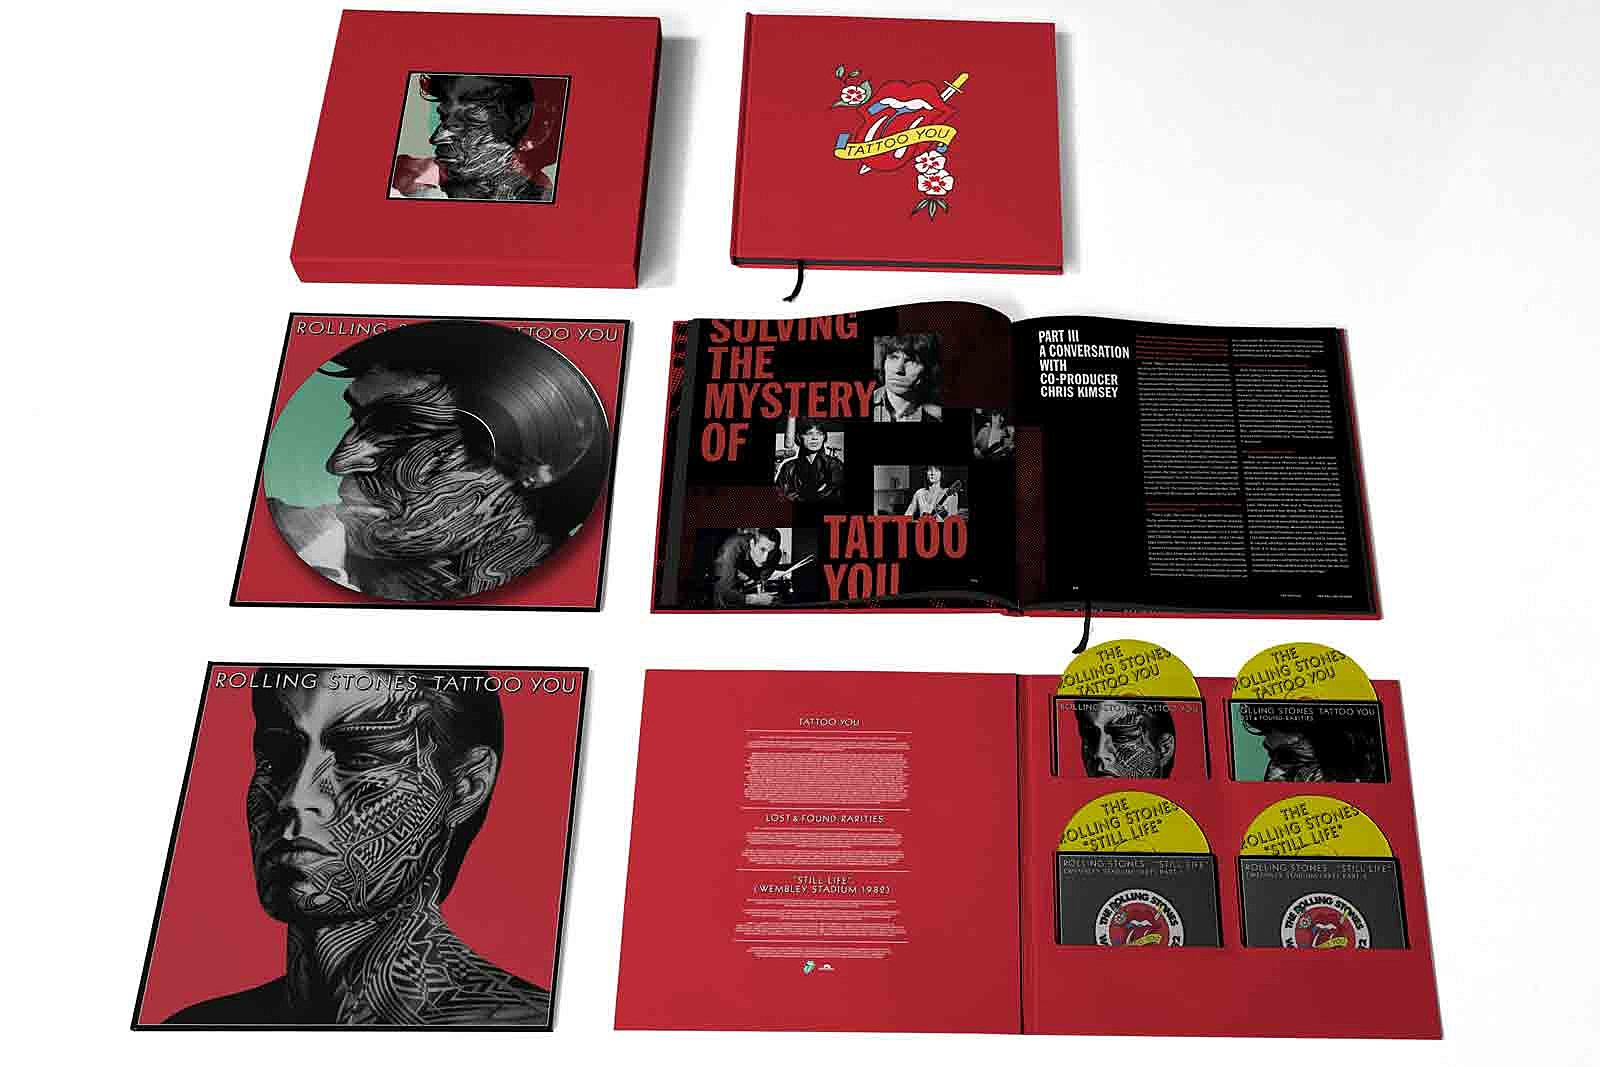 Rolling Stones, 'Tattoo You (40th Anniversary Edition)': Review